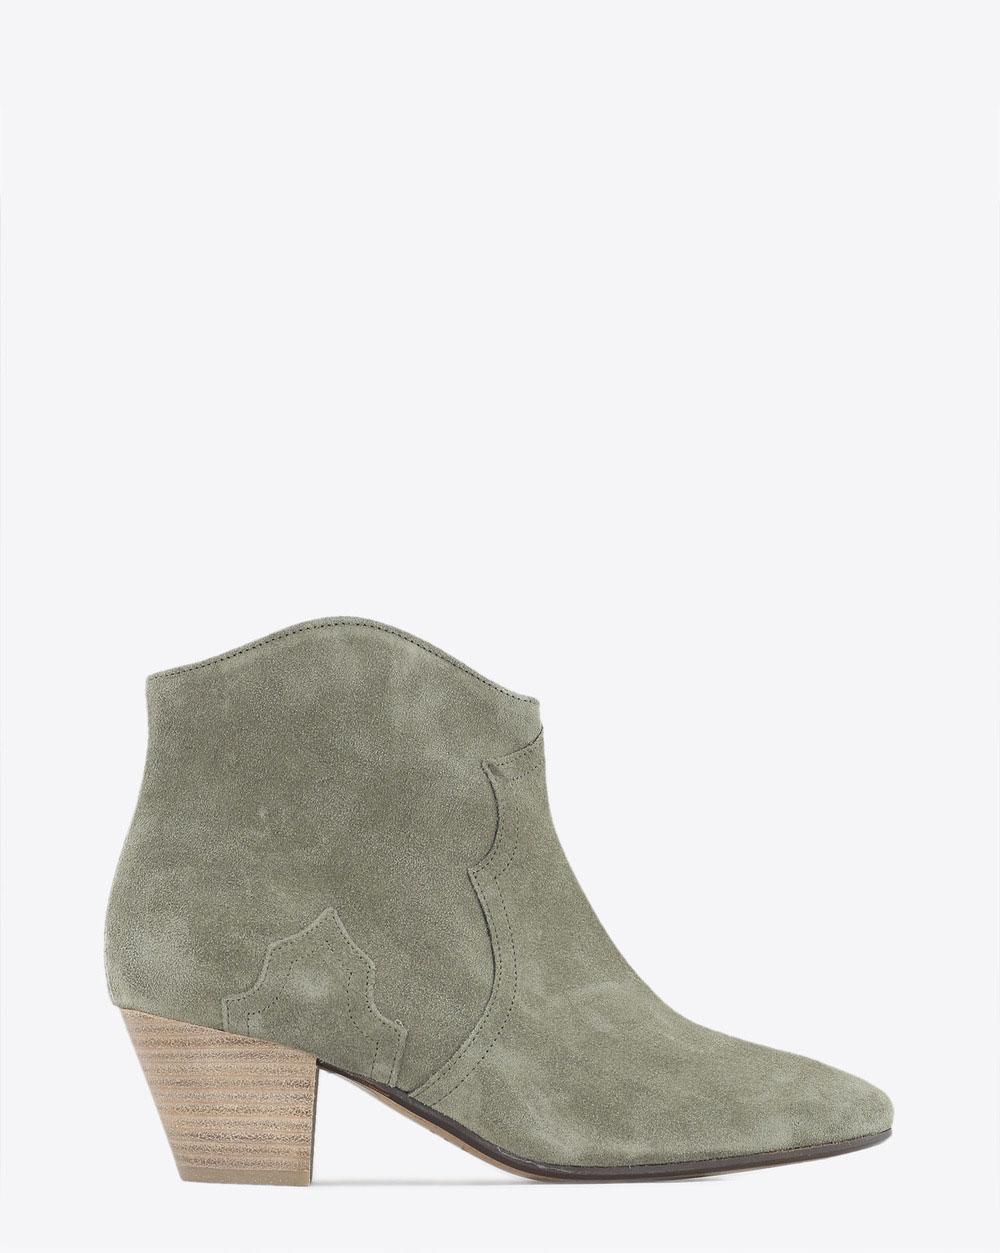 Isabel Marant Chaussures Boots Dicker Taupe